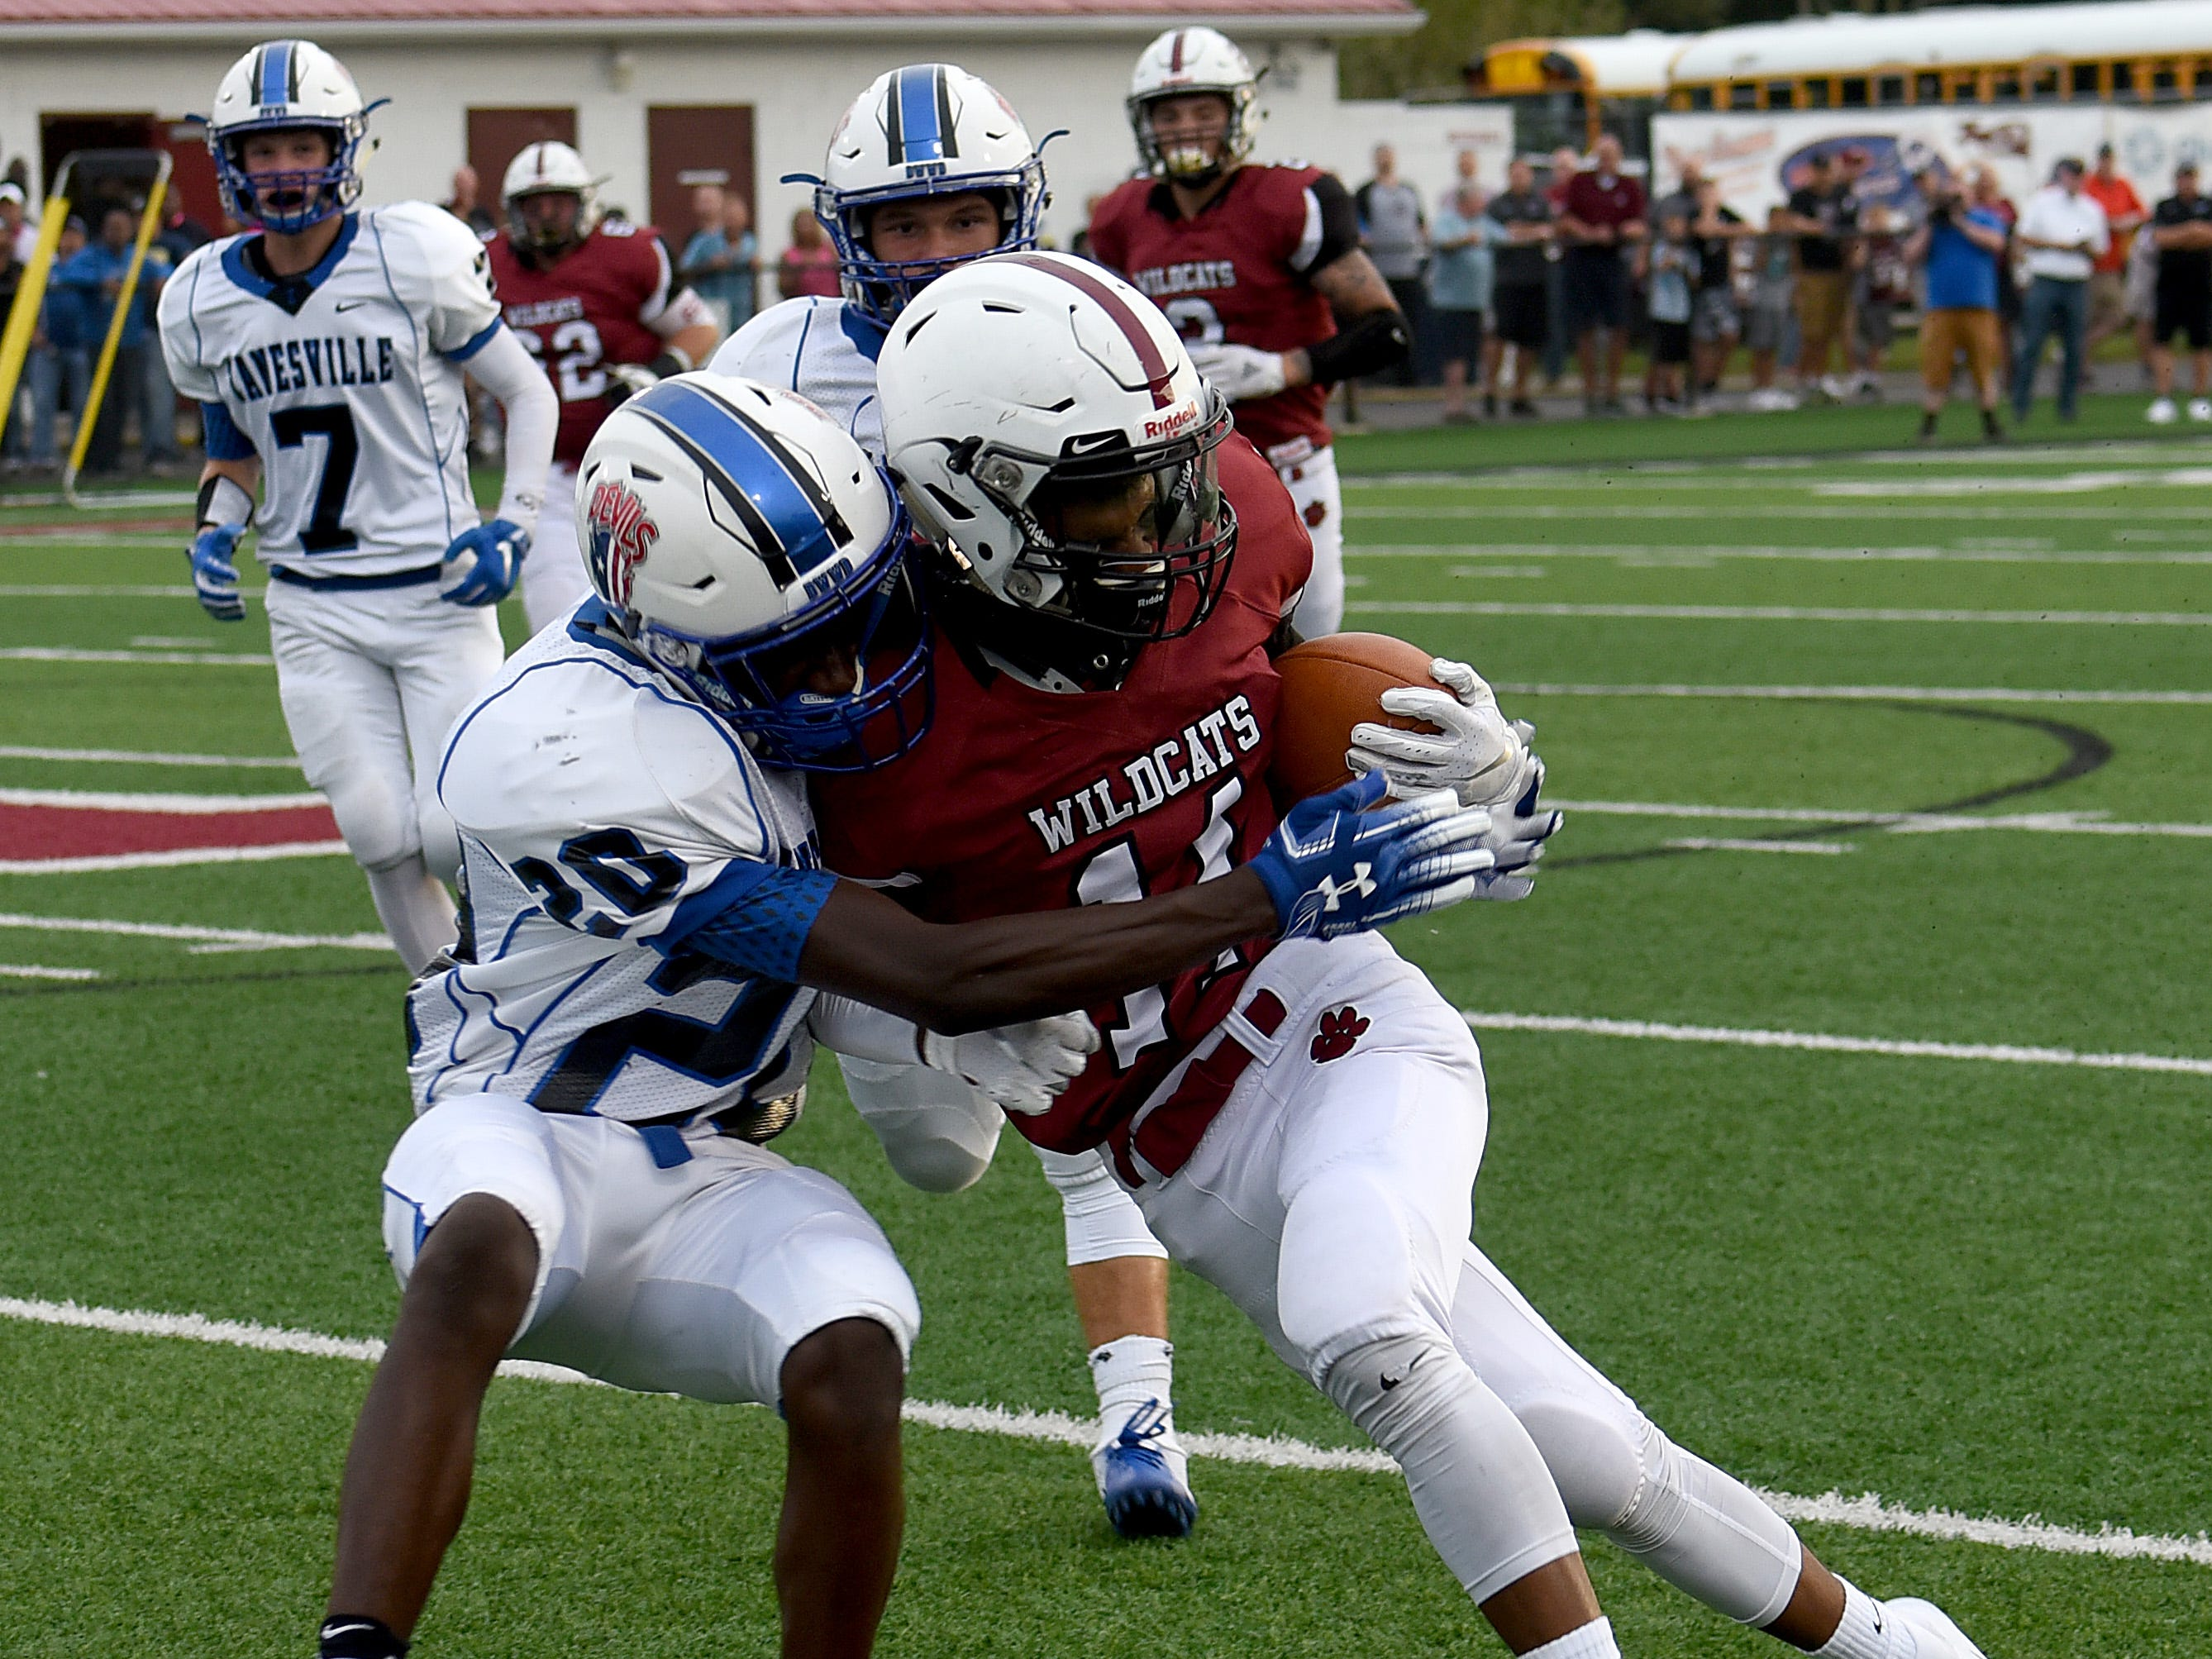 Zanesville junior Jamal Wiggins tackles Newark wide receiver Dustin Williams during Friday night's season opening game at White Field in Newark. The Blue Devils defeated the Wildcats 32-27.